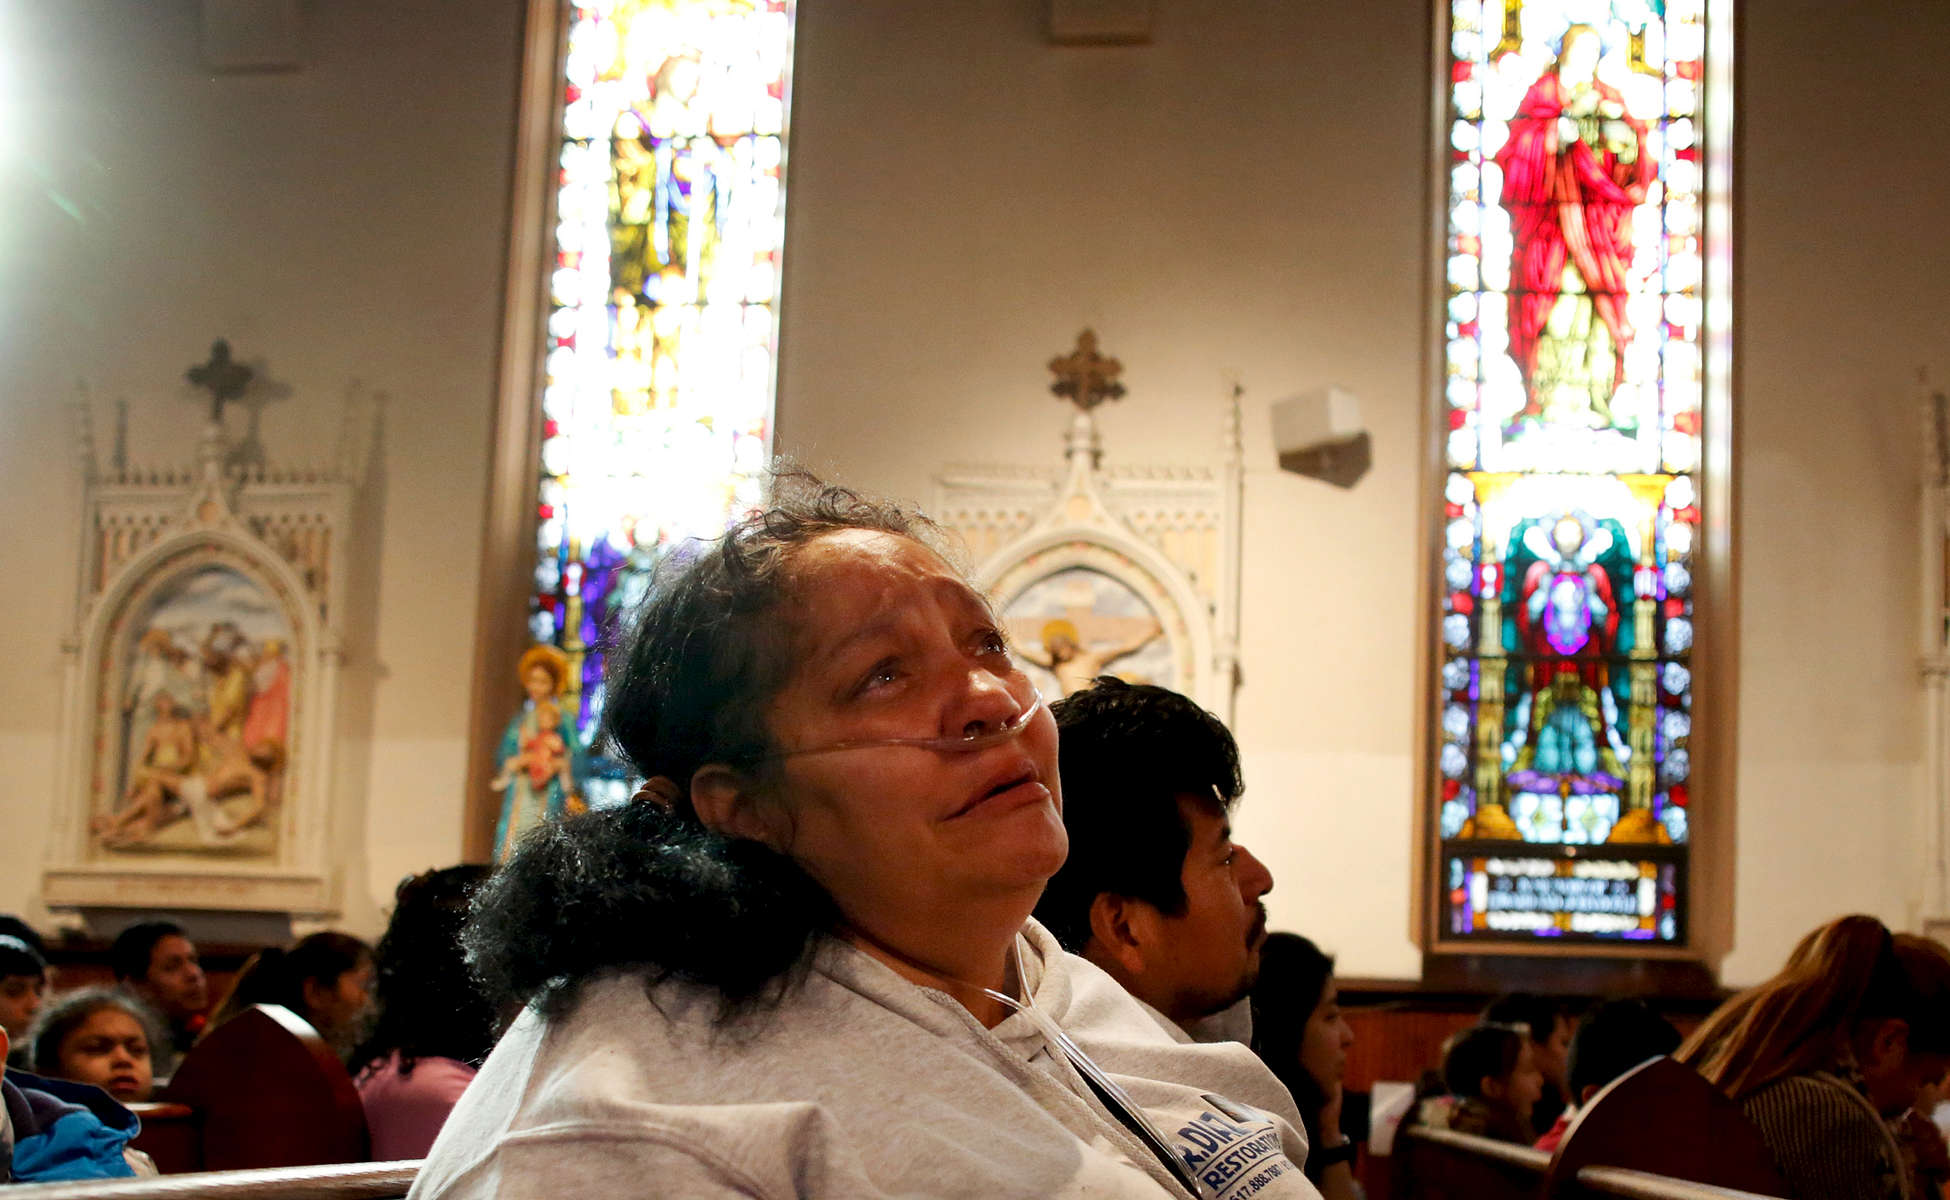 After a bout with pneumonia left Raquel on oxygen, Jose started taking her to church. At the end of mass the children's choir starts to sing and Raquel breaks down, {quote}I miss my babies.{quote} she says quietly.